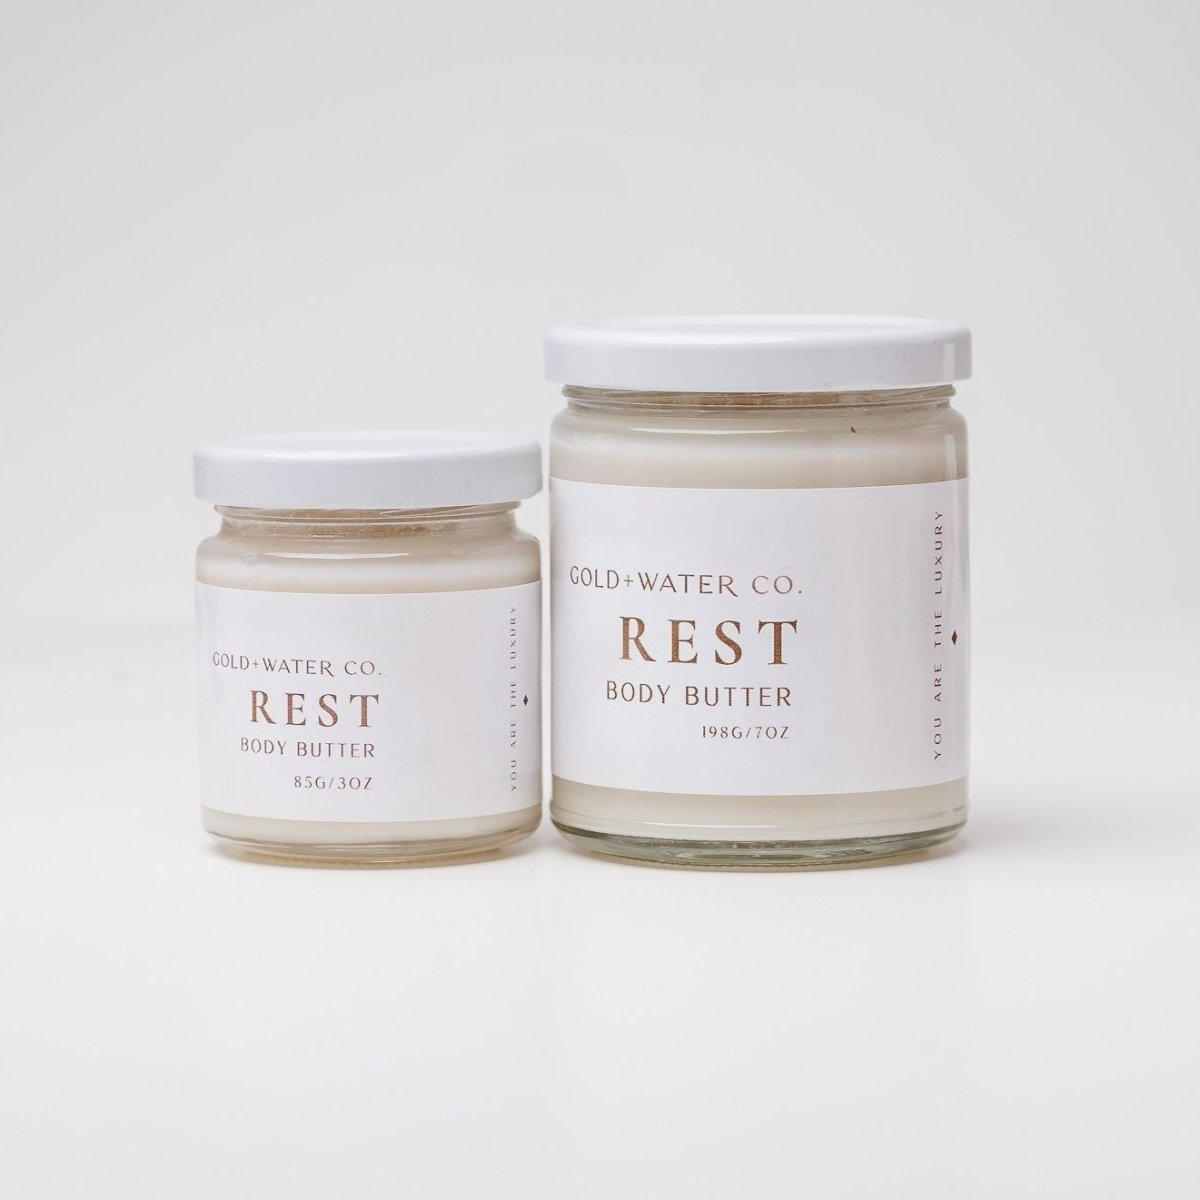 Body Butter - GOLD+WATER CO.